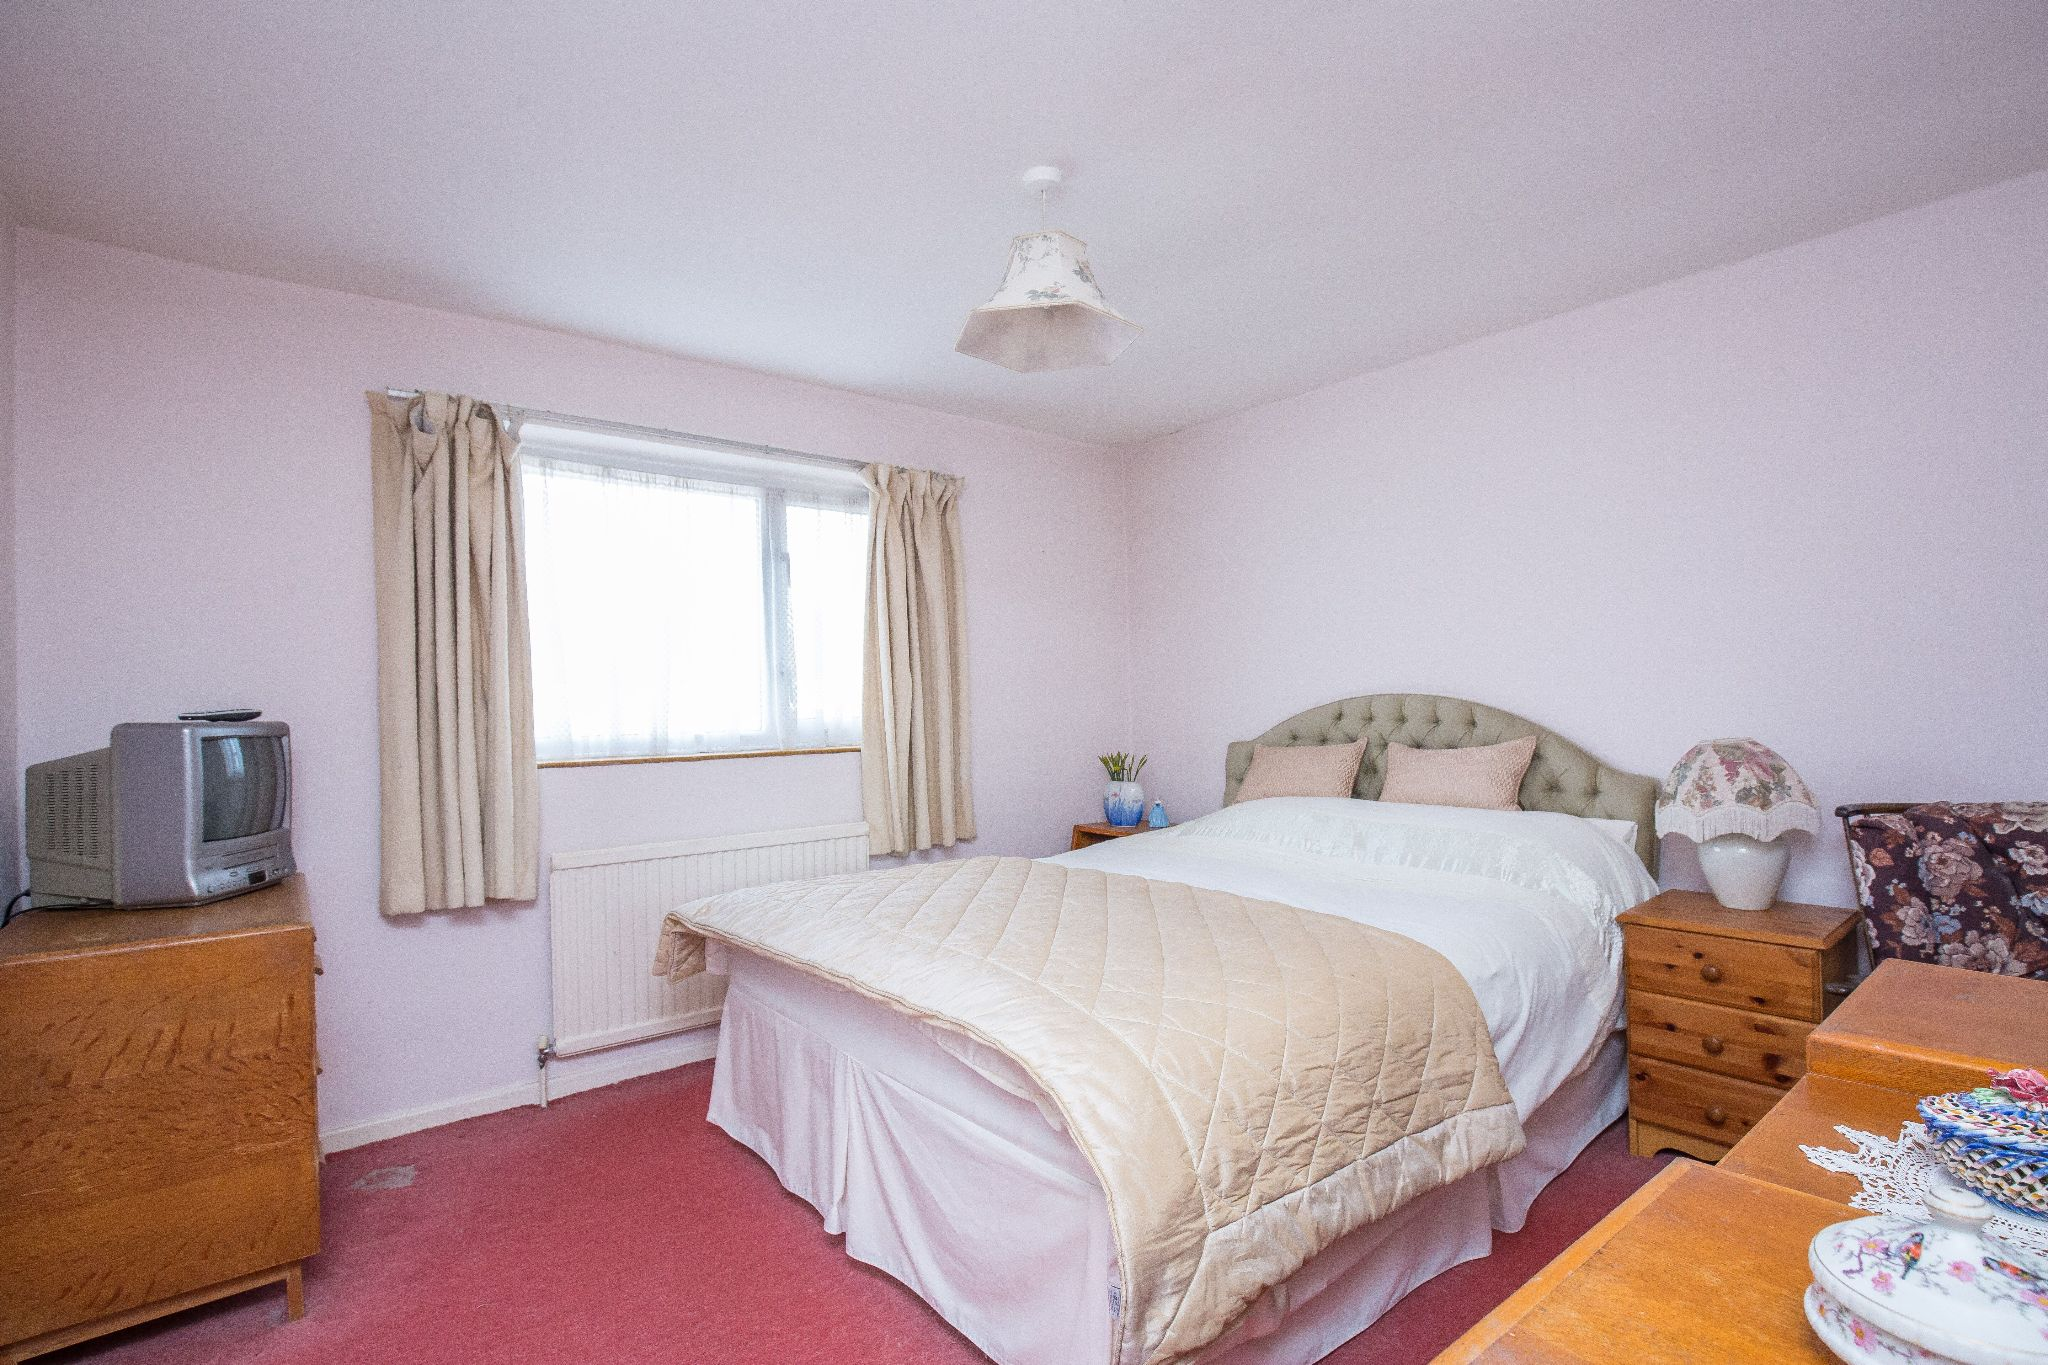 3 bedroom mid terraced house SSTC in Welham Green - Photograph 10